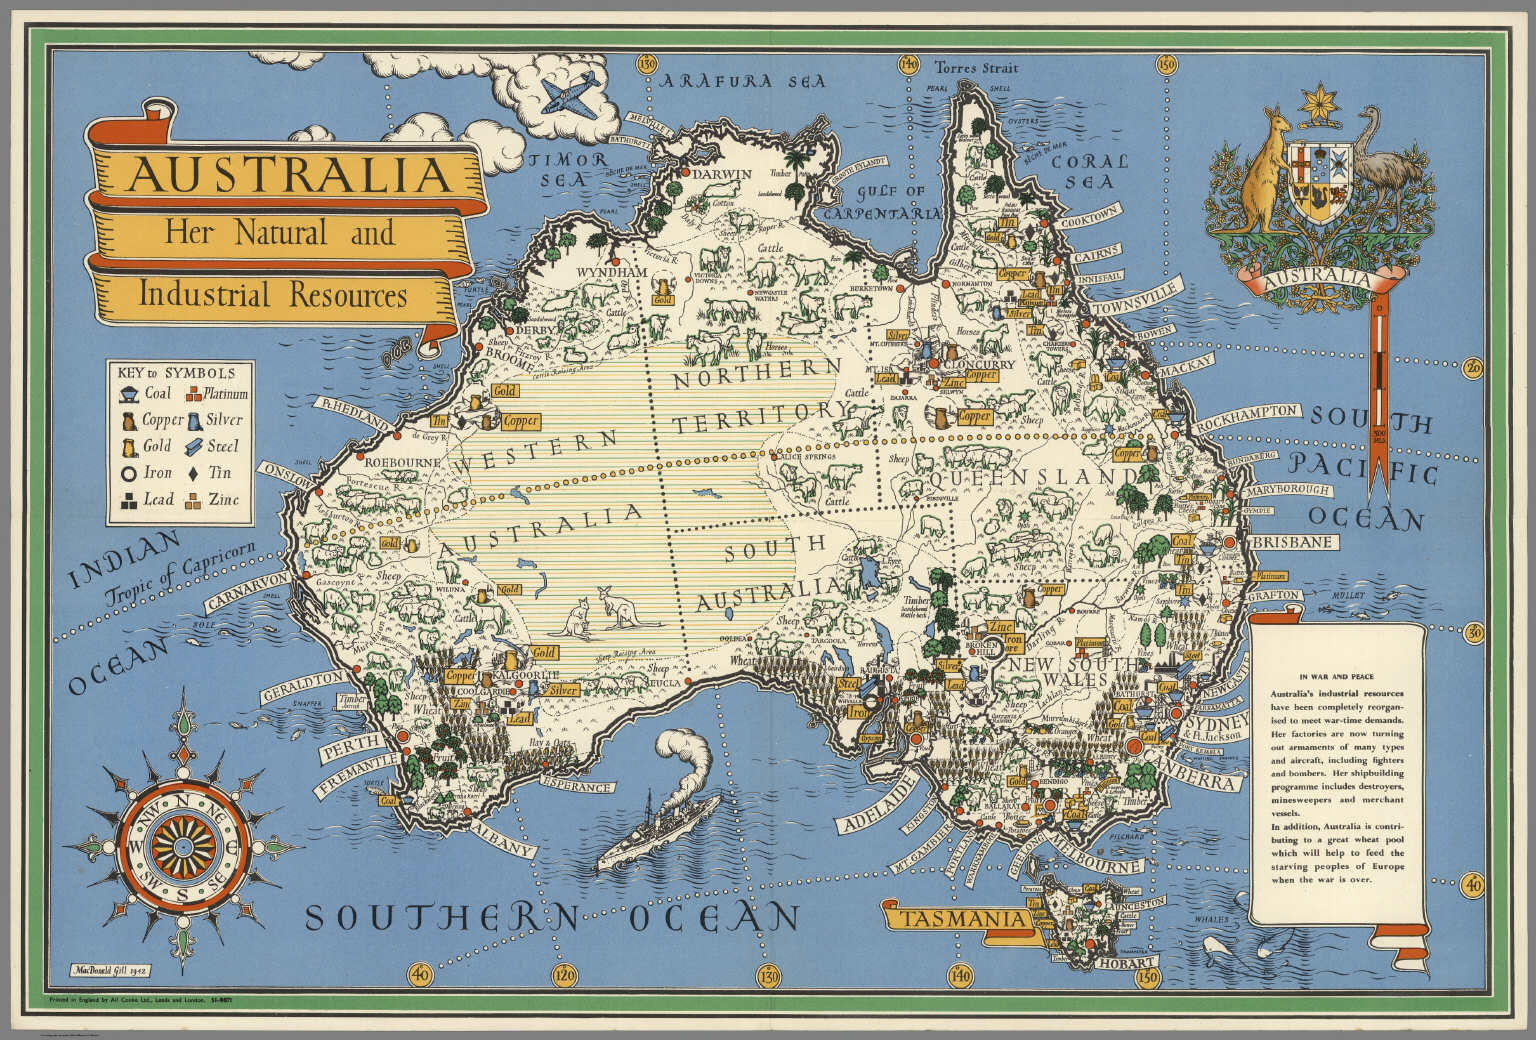 Map Of Australia To Buy.Australia Her Natural And Industrial Resources David Rumsey